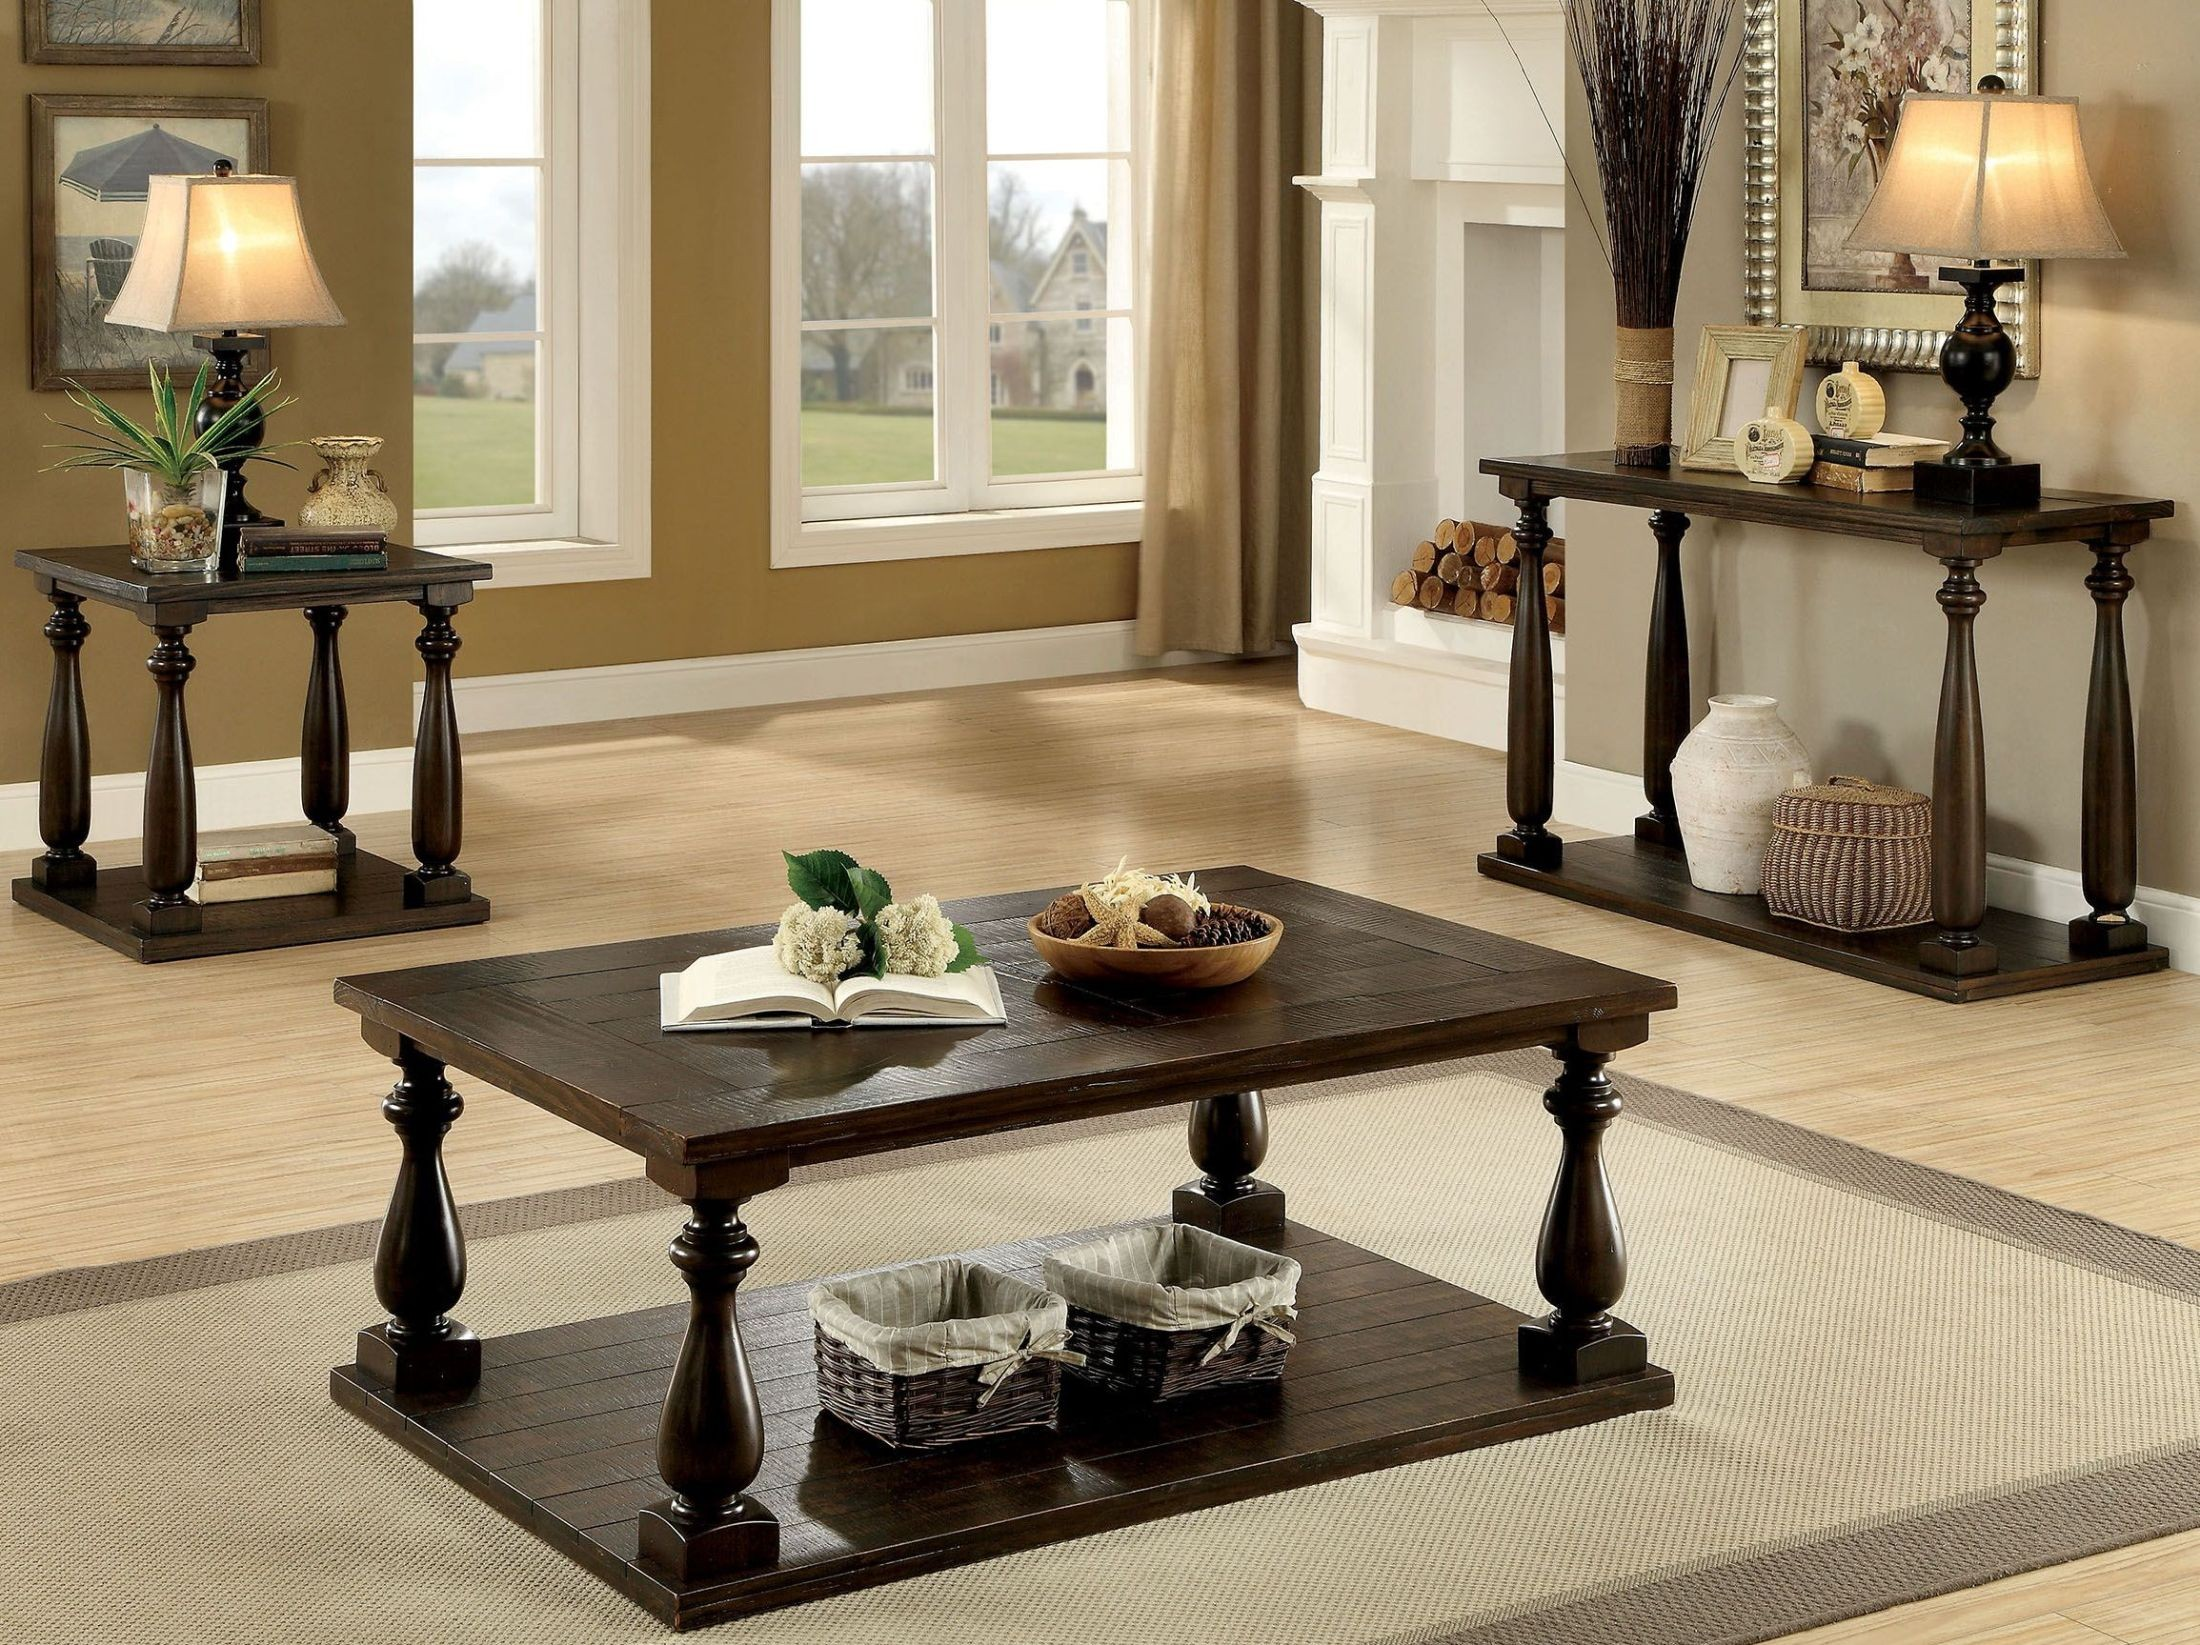 Muebles Luan Arbo - Luan Dark Walnut Occasional Table Set From Furniture Of America [mjhdah]https://s-media-cache-ak0.pinimg.com/originals/be/56/9c/be569cd15921acb12caaeb592c8dacd5.jpg